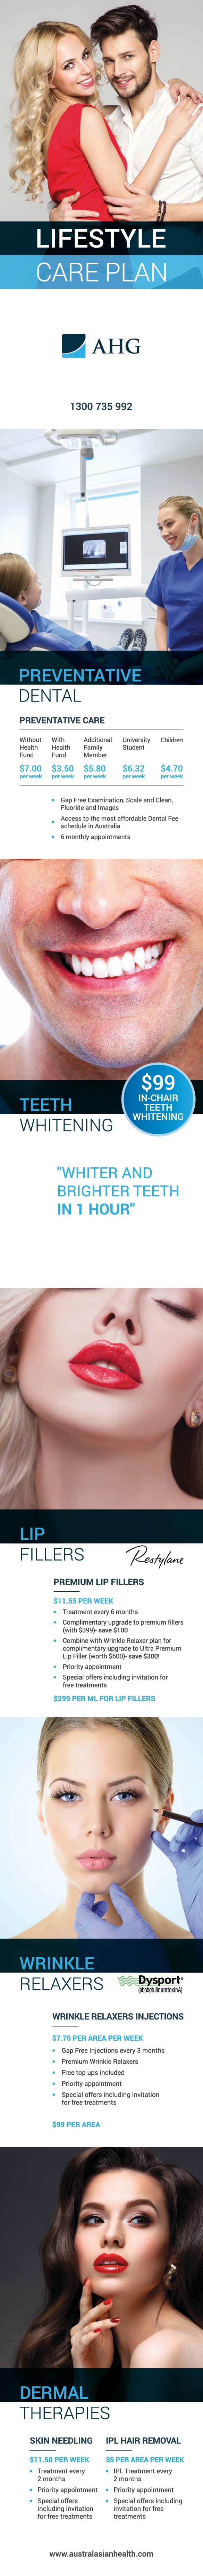 Flyer for a Medical Cosmetic and Dental Company